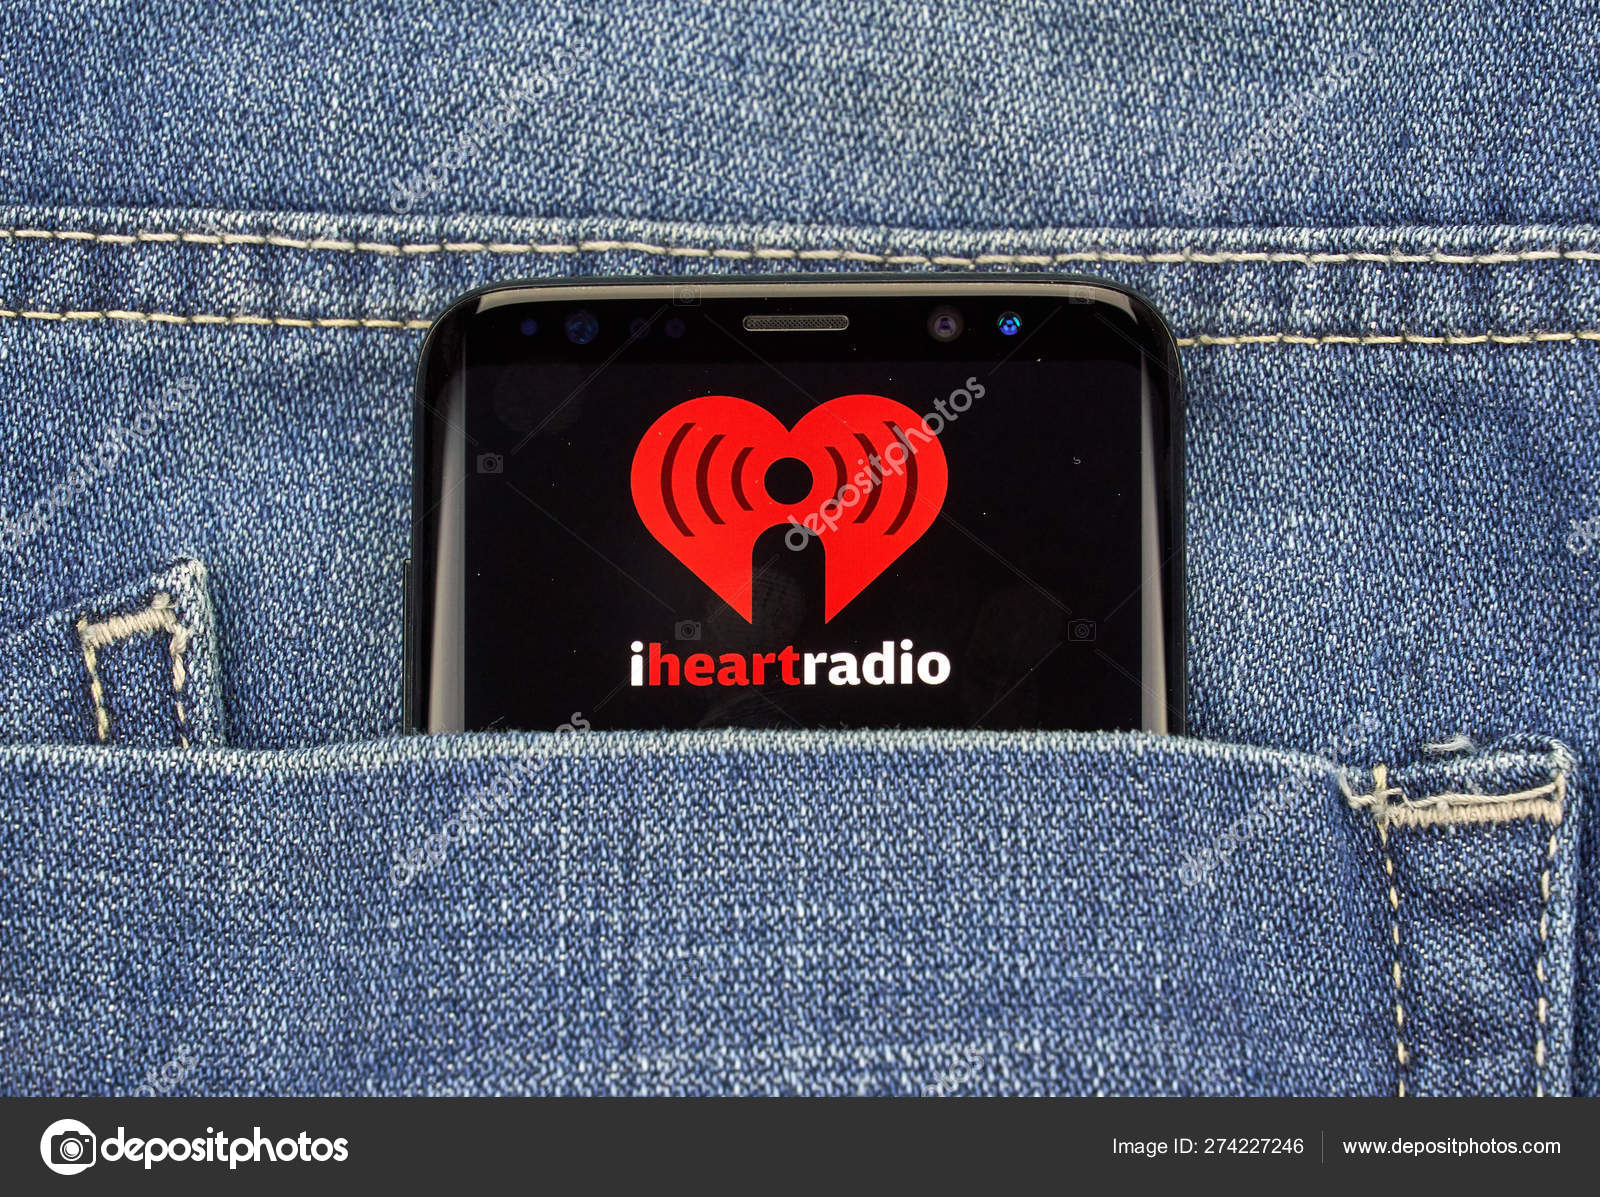 how to download i heart radio app